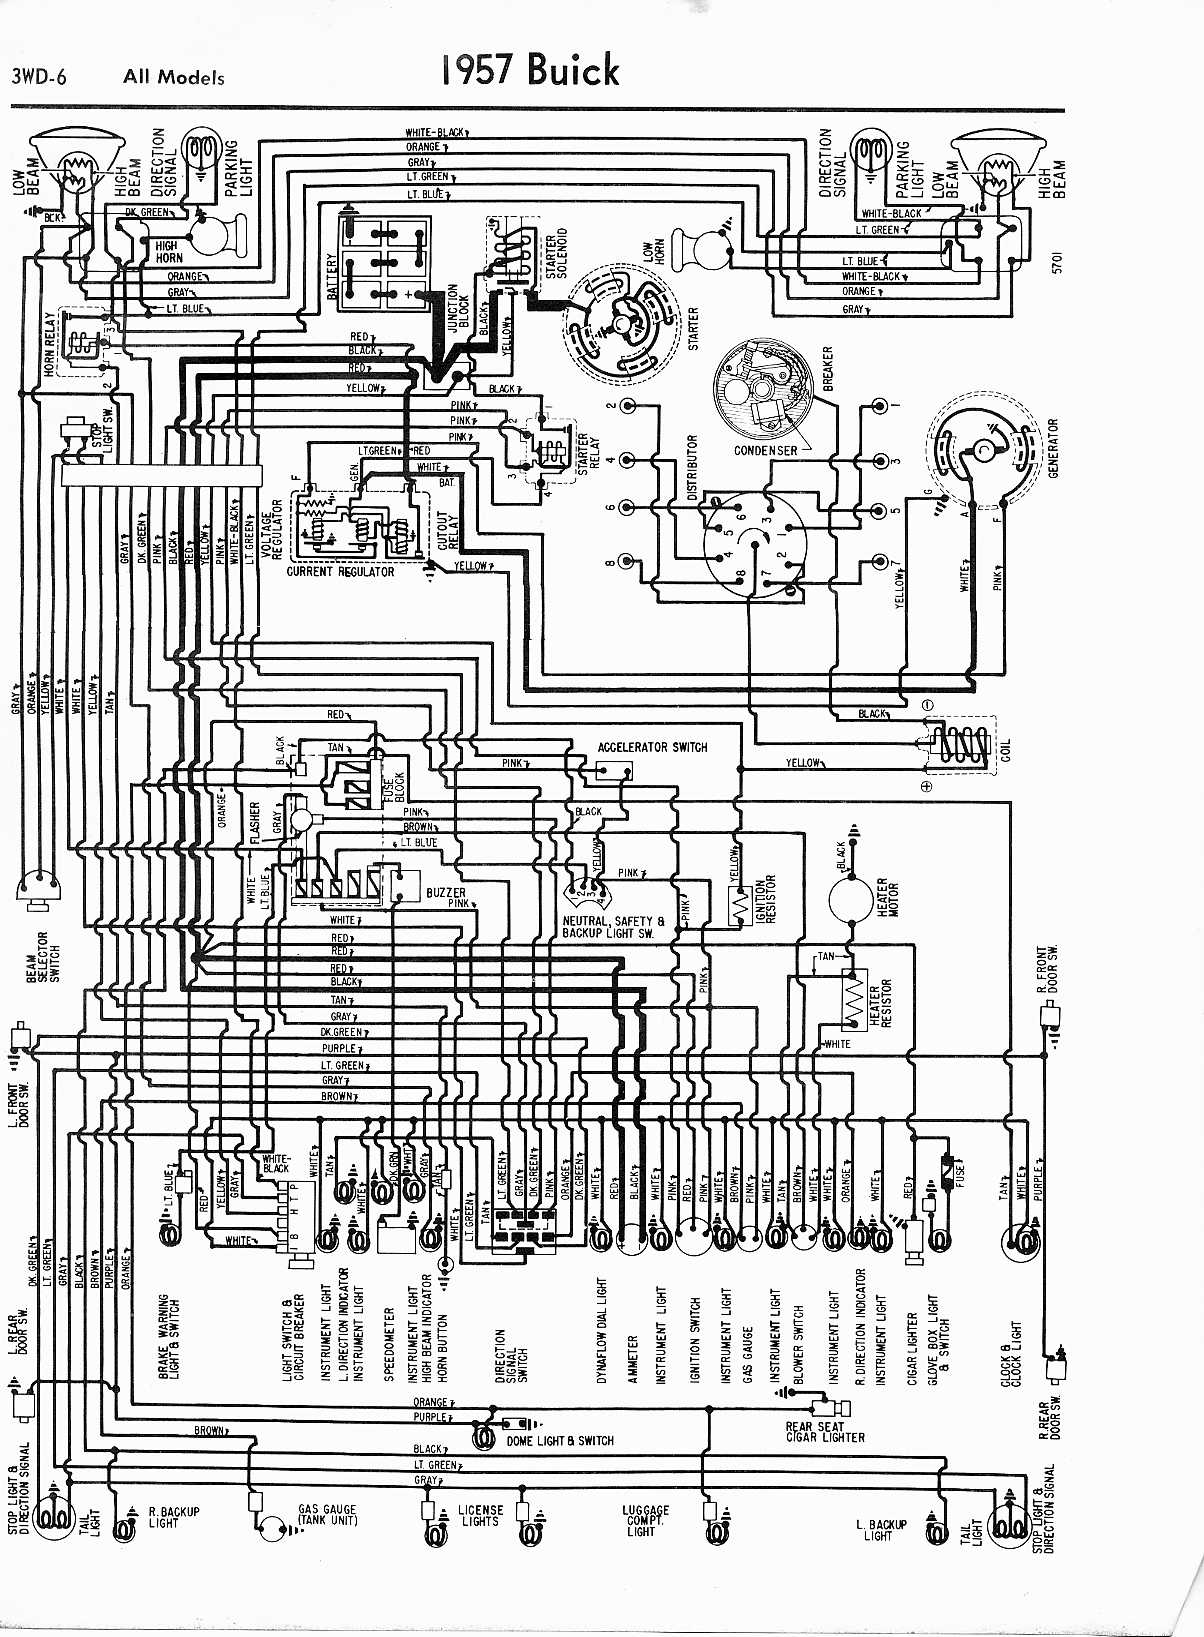 1954 Buick Wiring Diagram Library Vw O2 Sensor